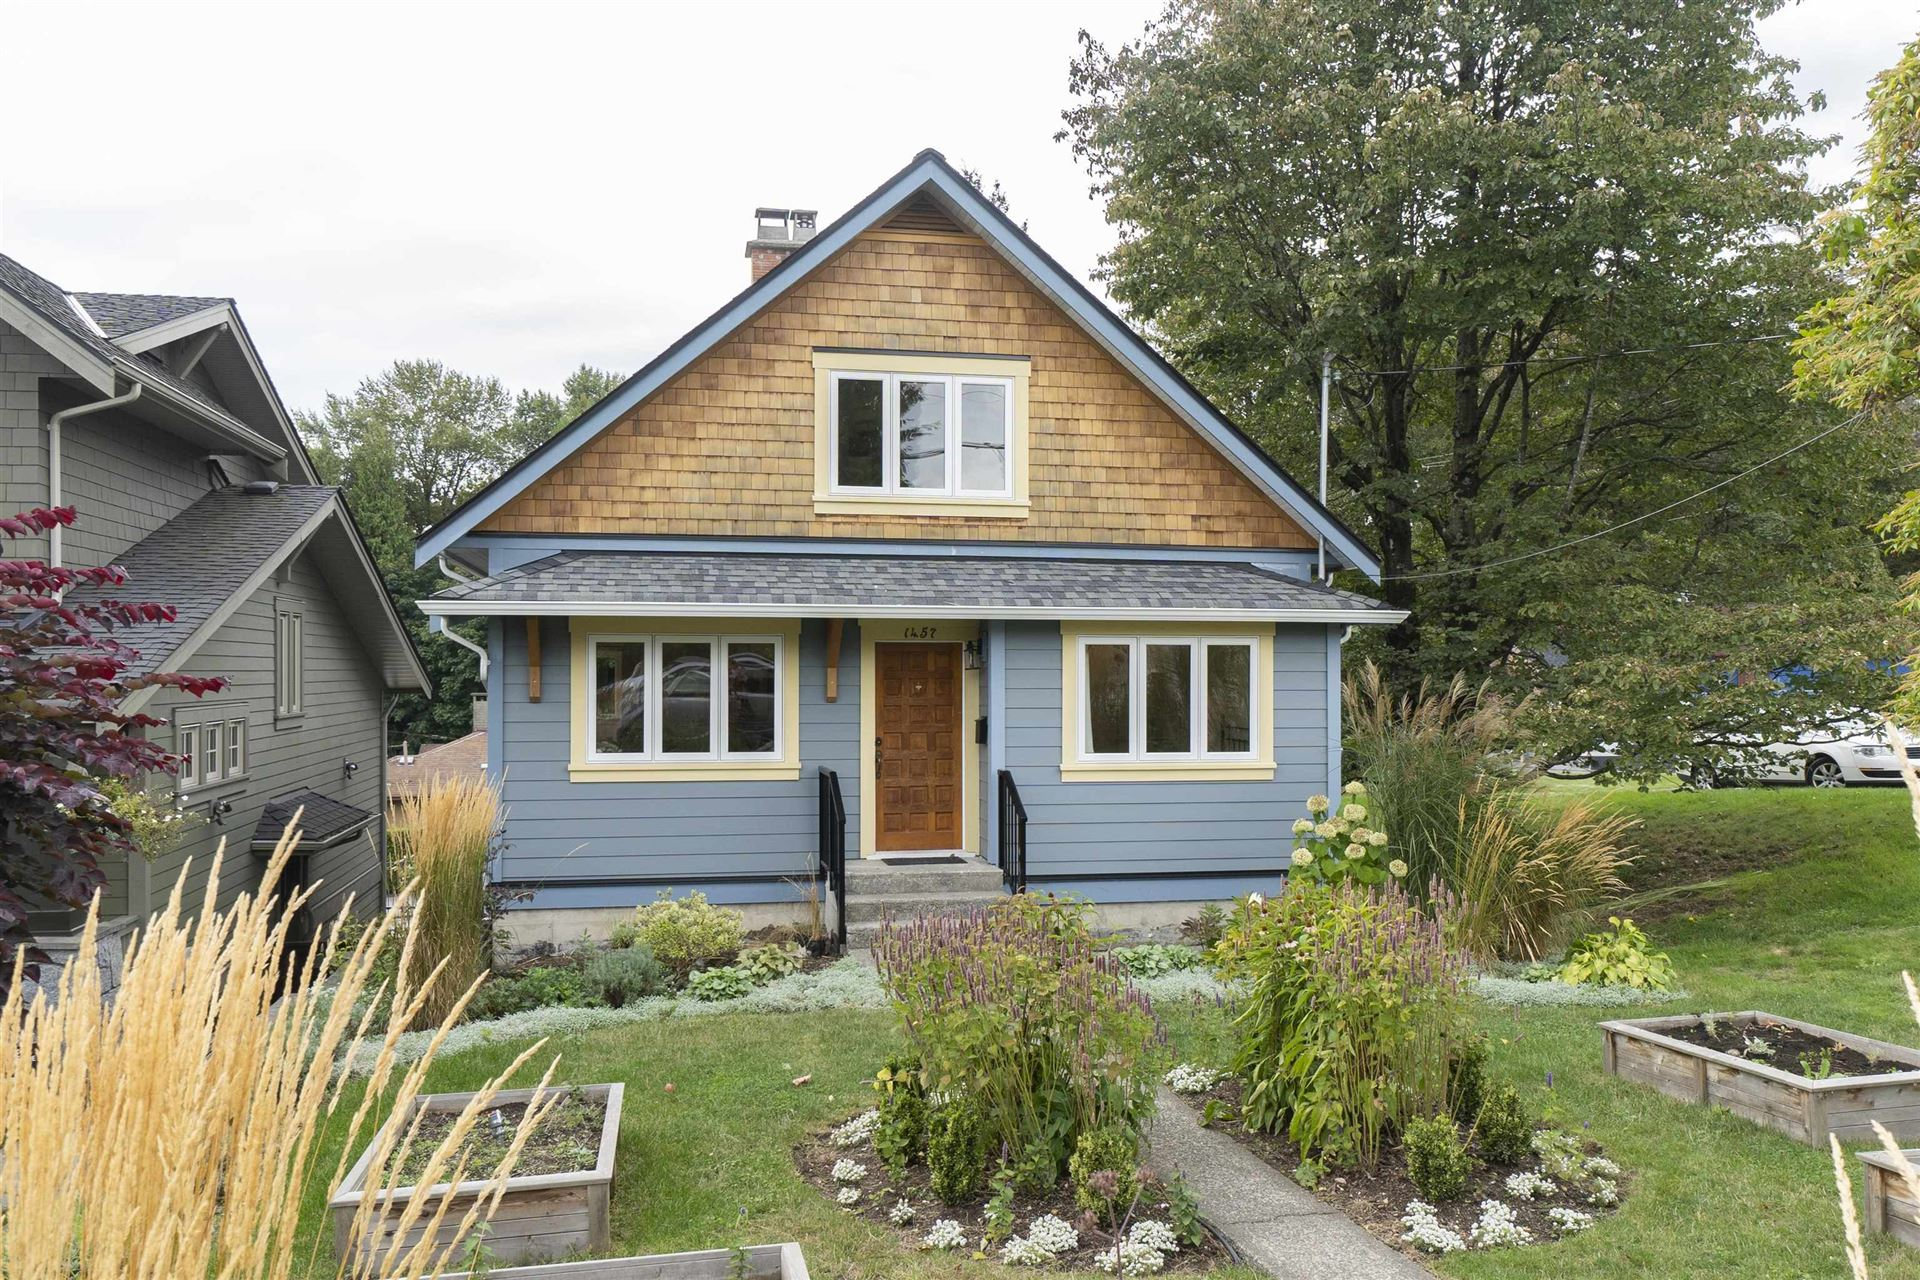 Photo of 1457 FORBES AVENUE, North Vancouver, BC V7M 2Y2 (MLS # R2620178)